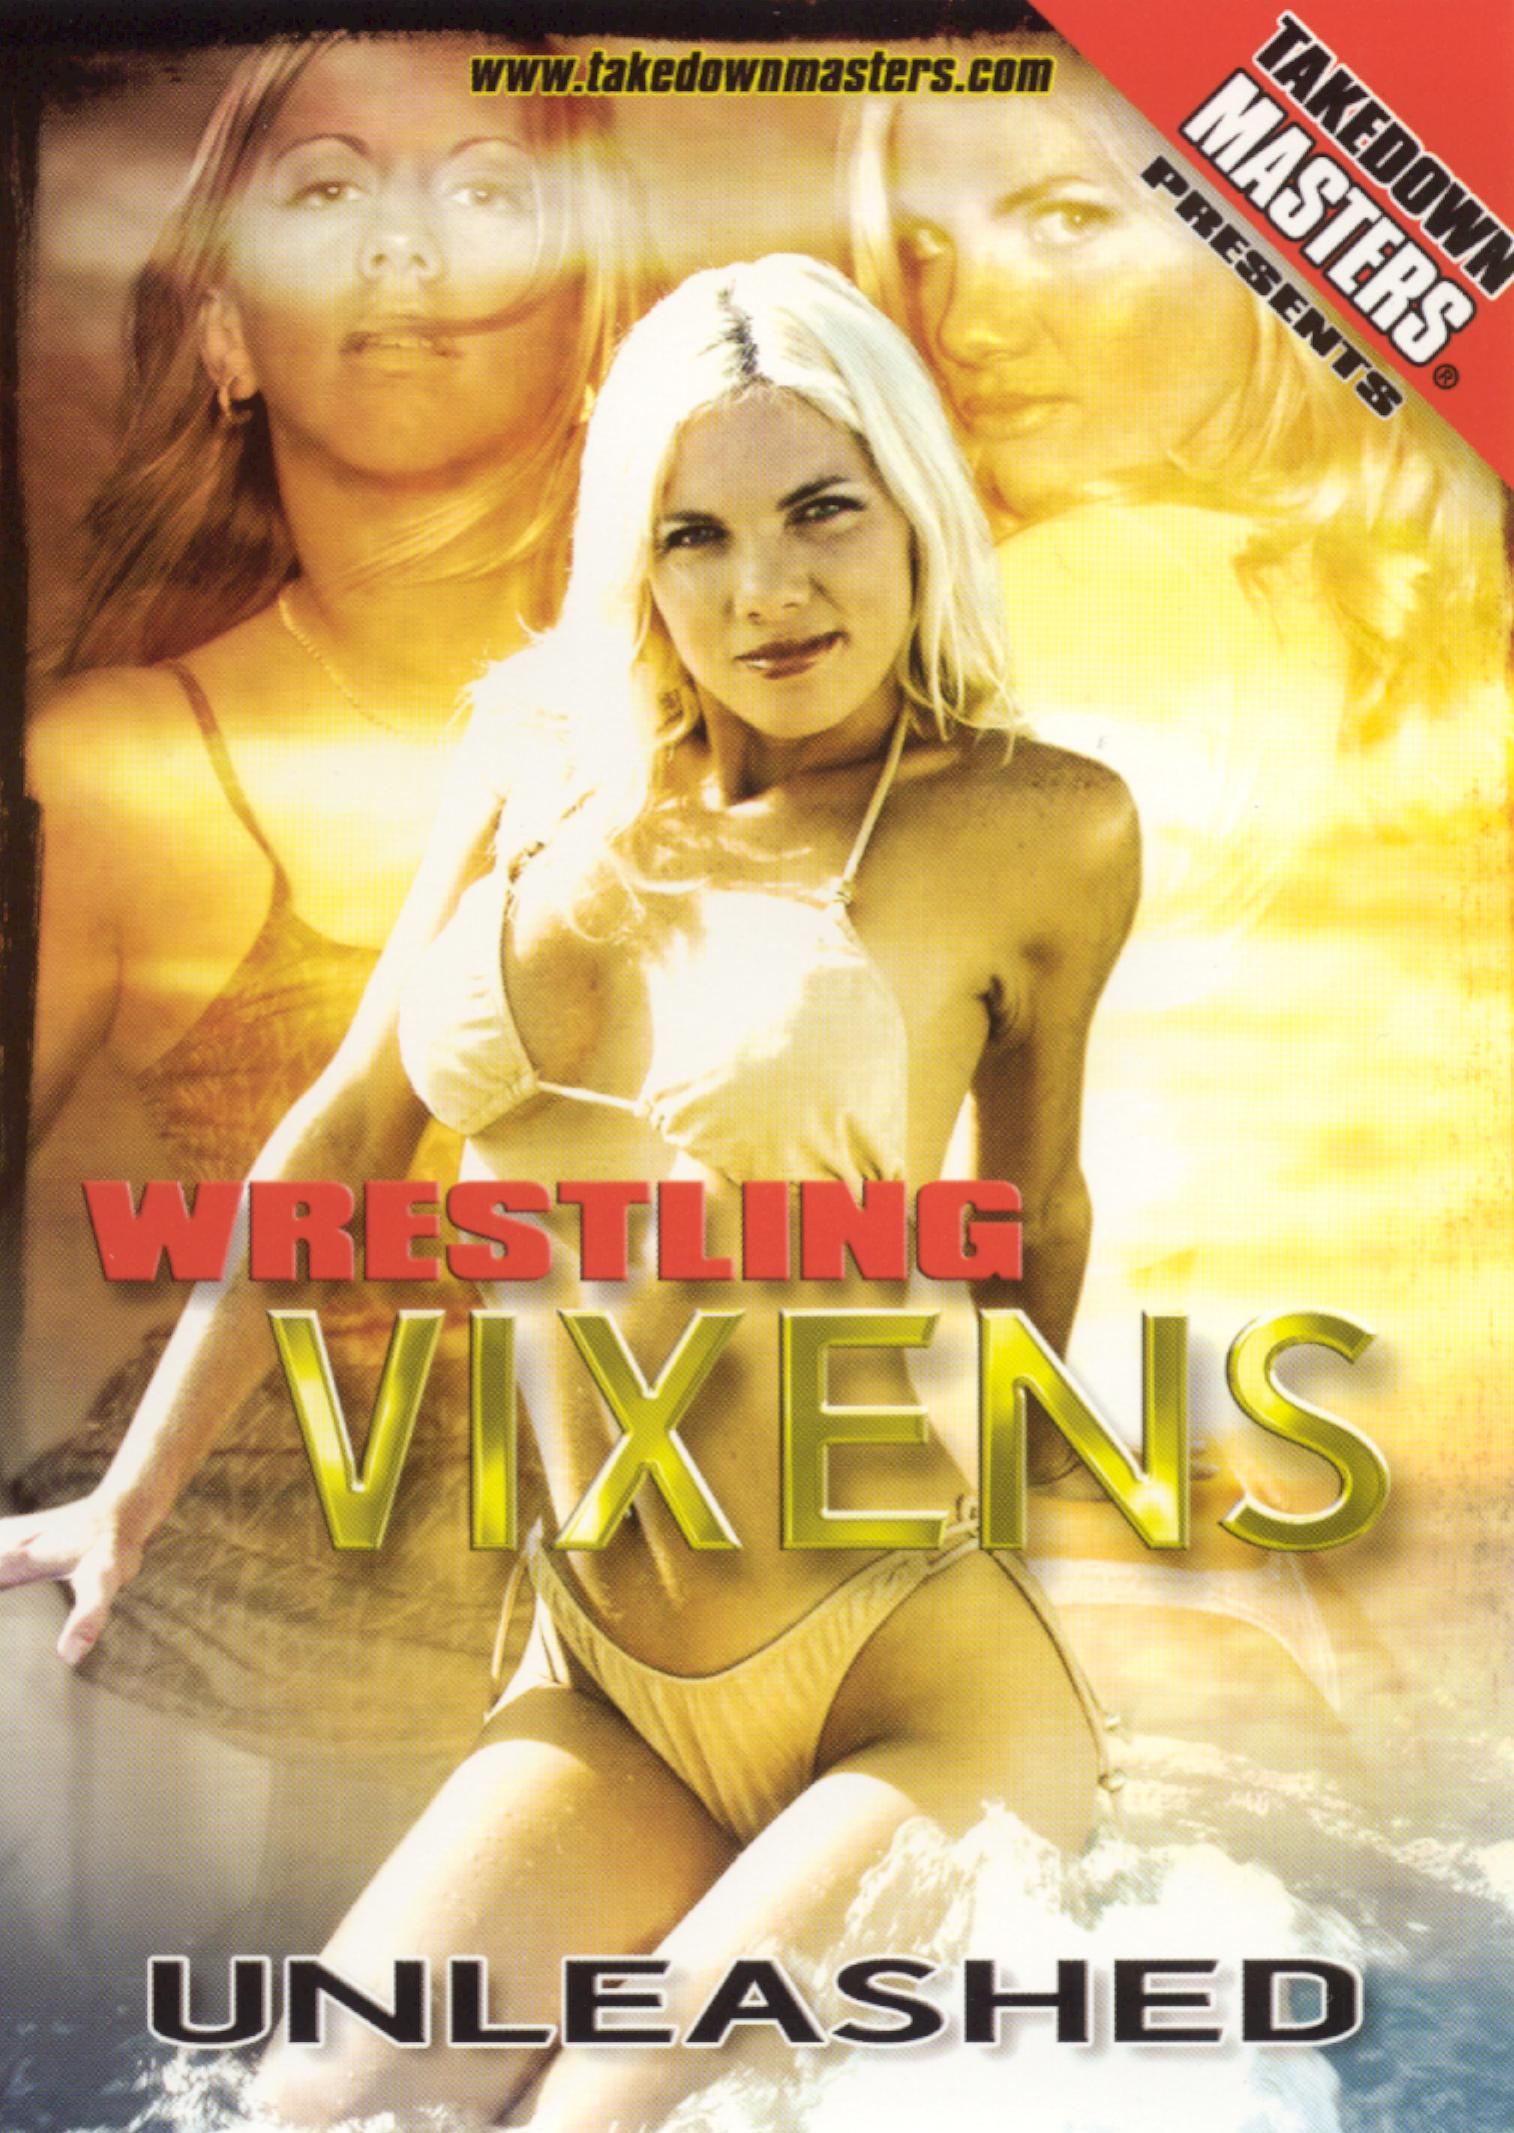 Takedown Masters: Wrestling Vixens Unleashed